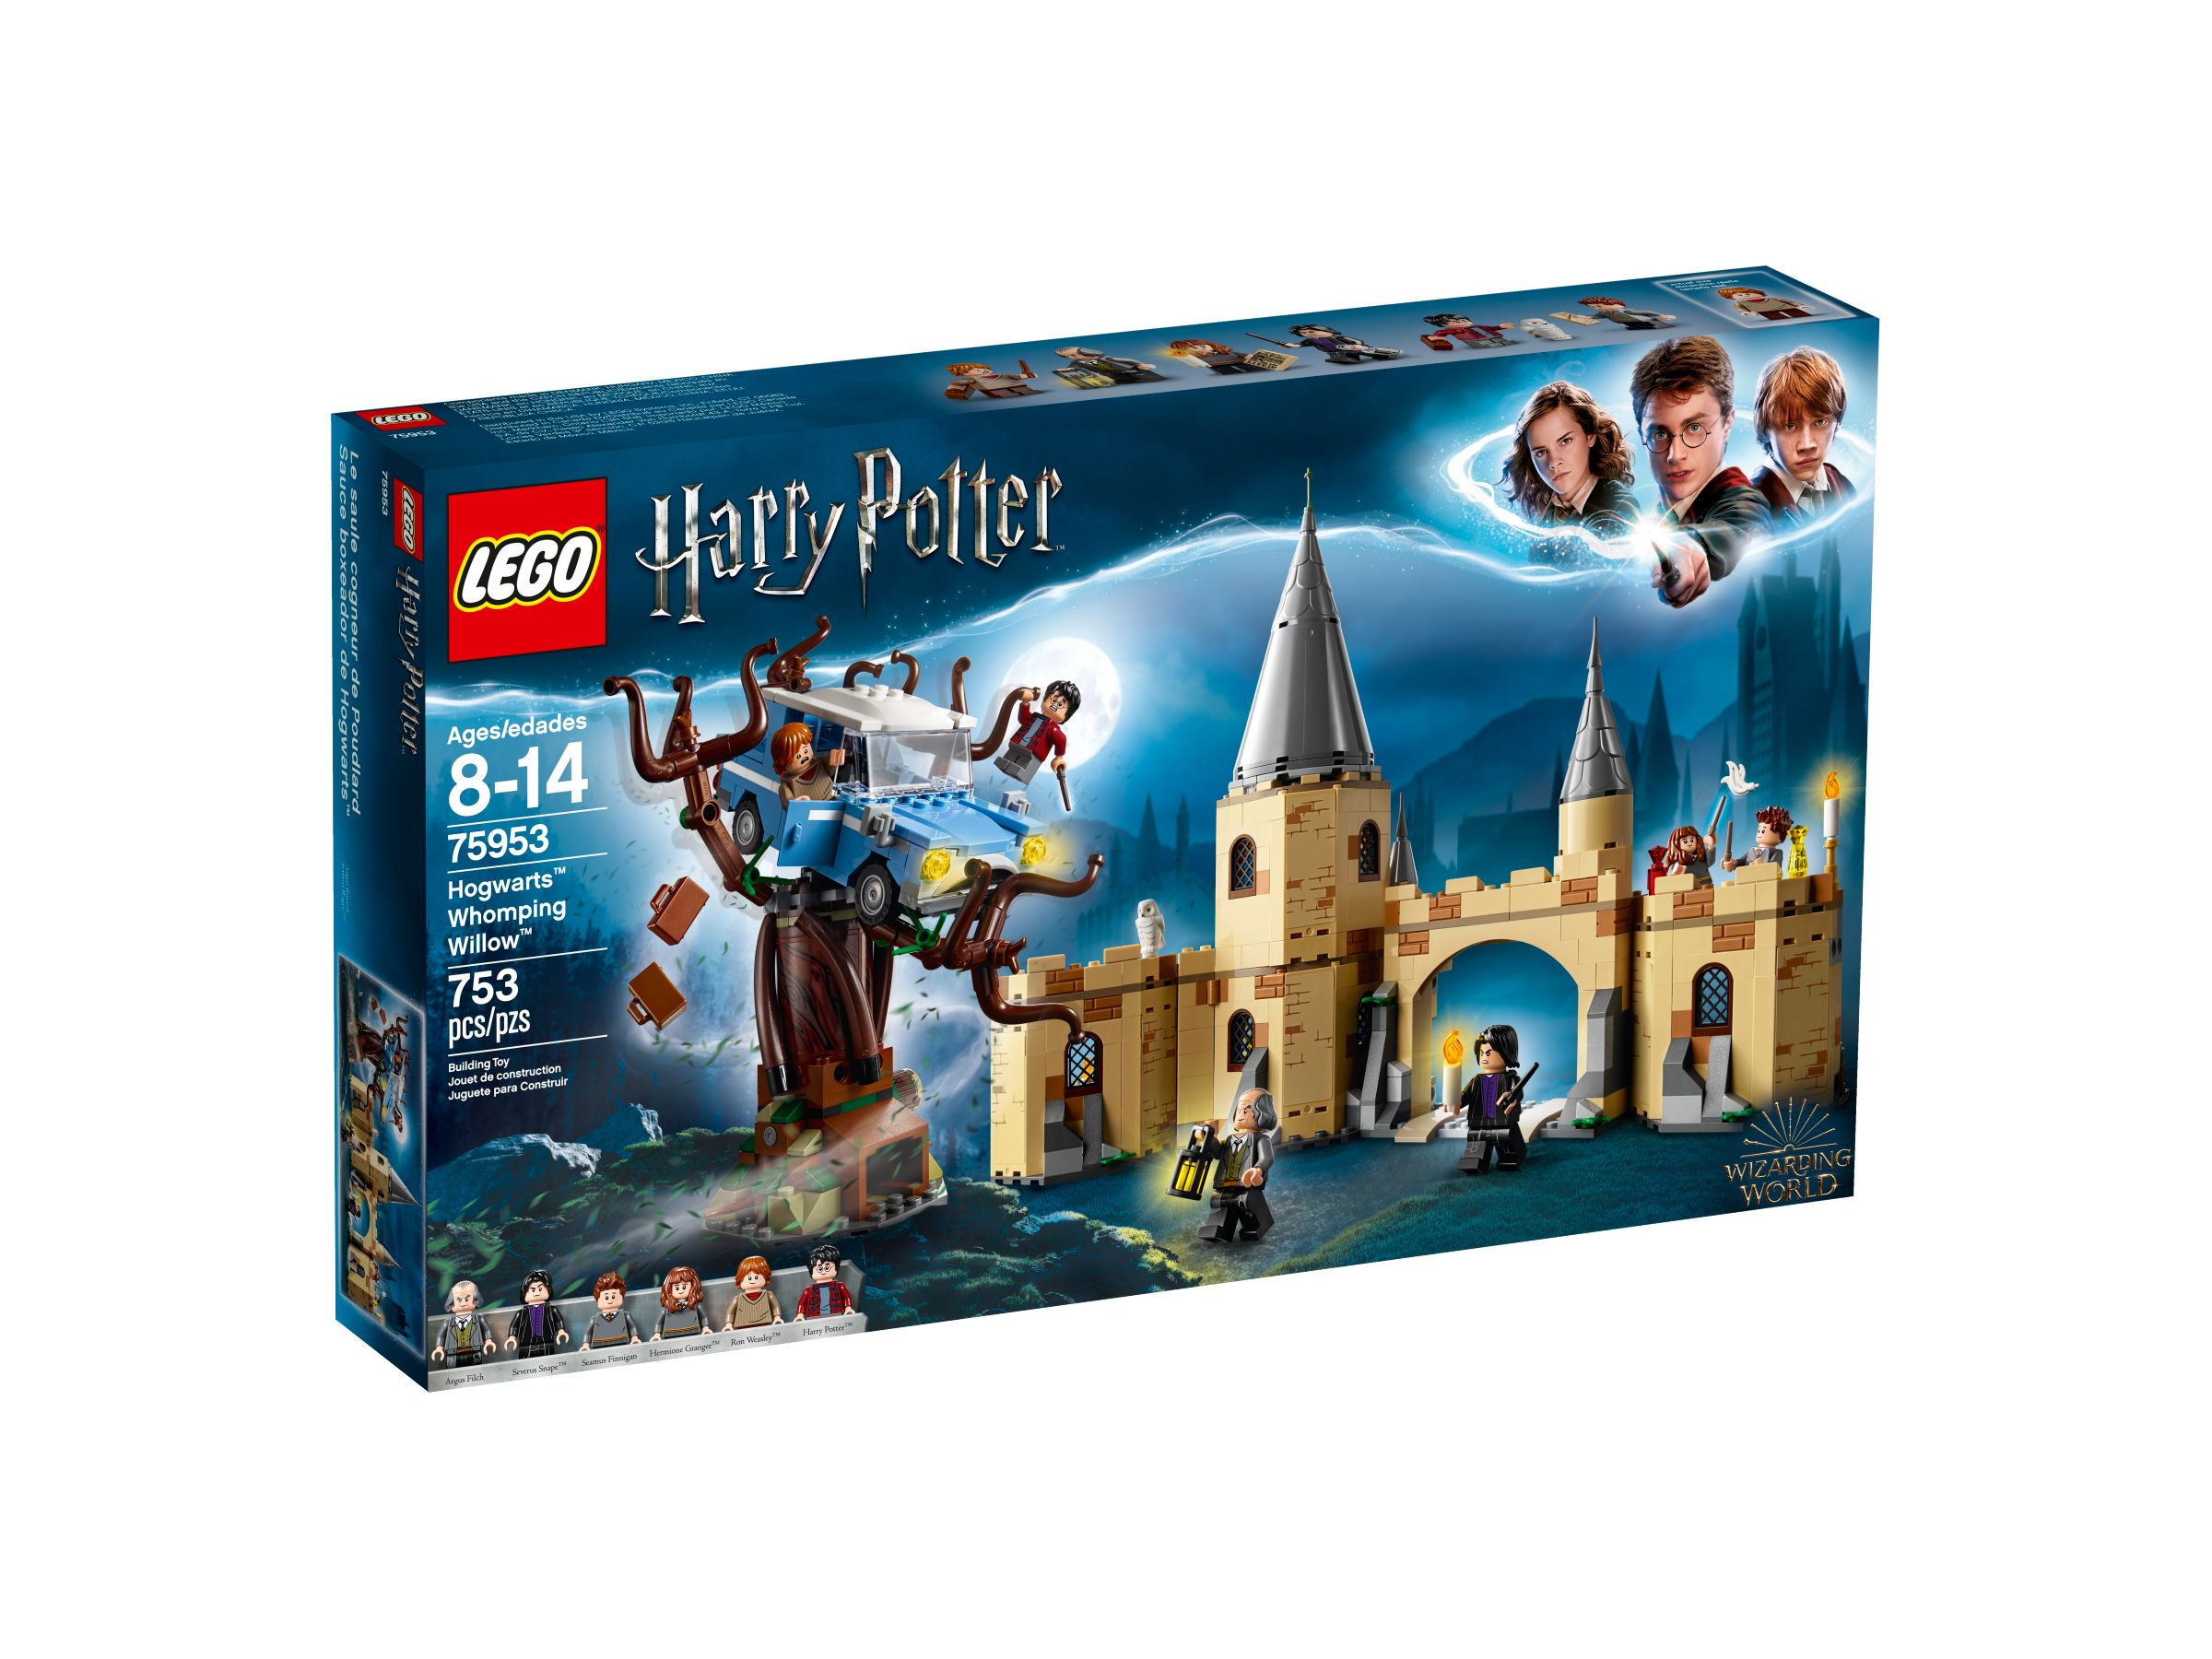 lego 75953 die peitschende weide von hogwarts harry potter 2018 ab 54 90 22 gespart. Black Bedroom Furniture Sets. Home Design Ideas